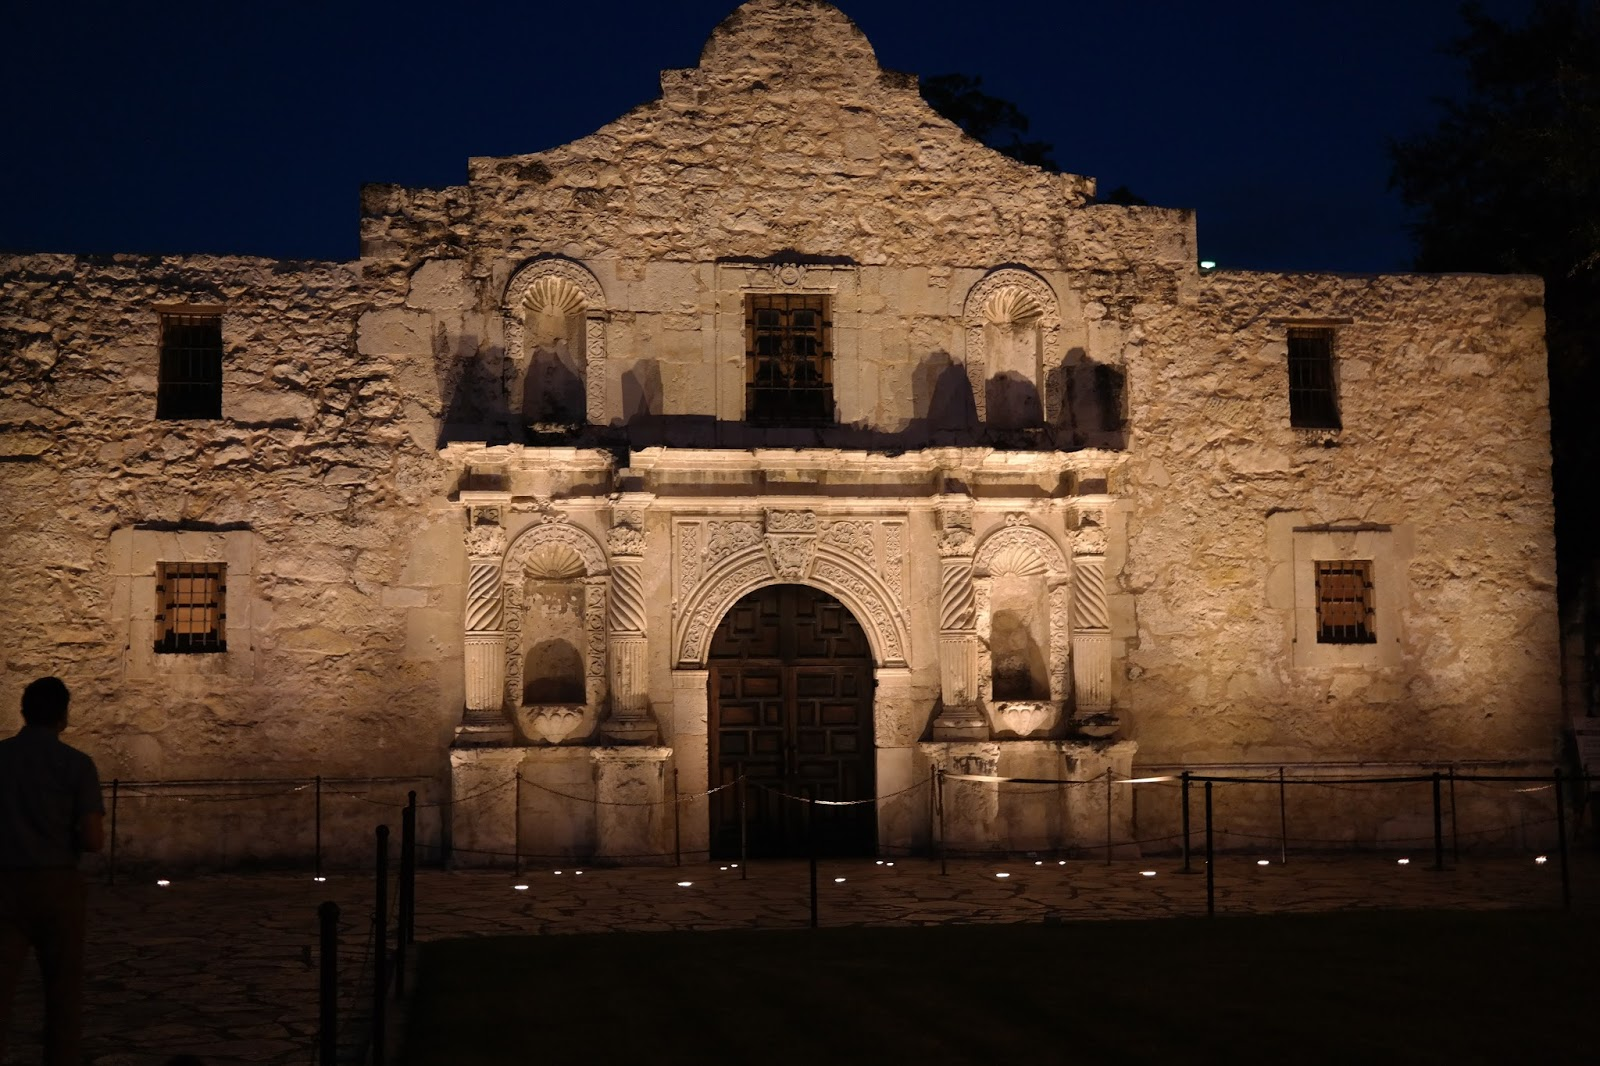 Remember the Alamo (song)